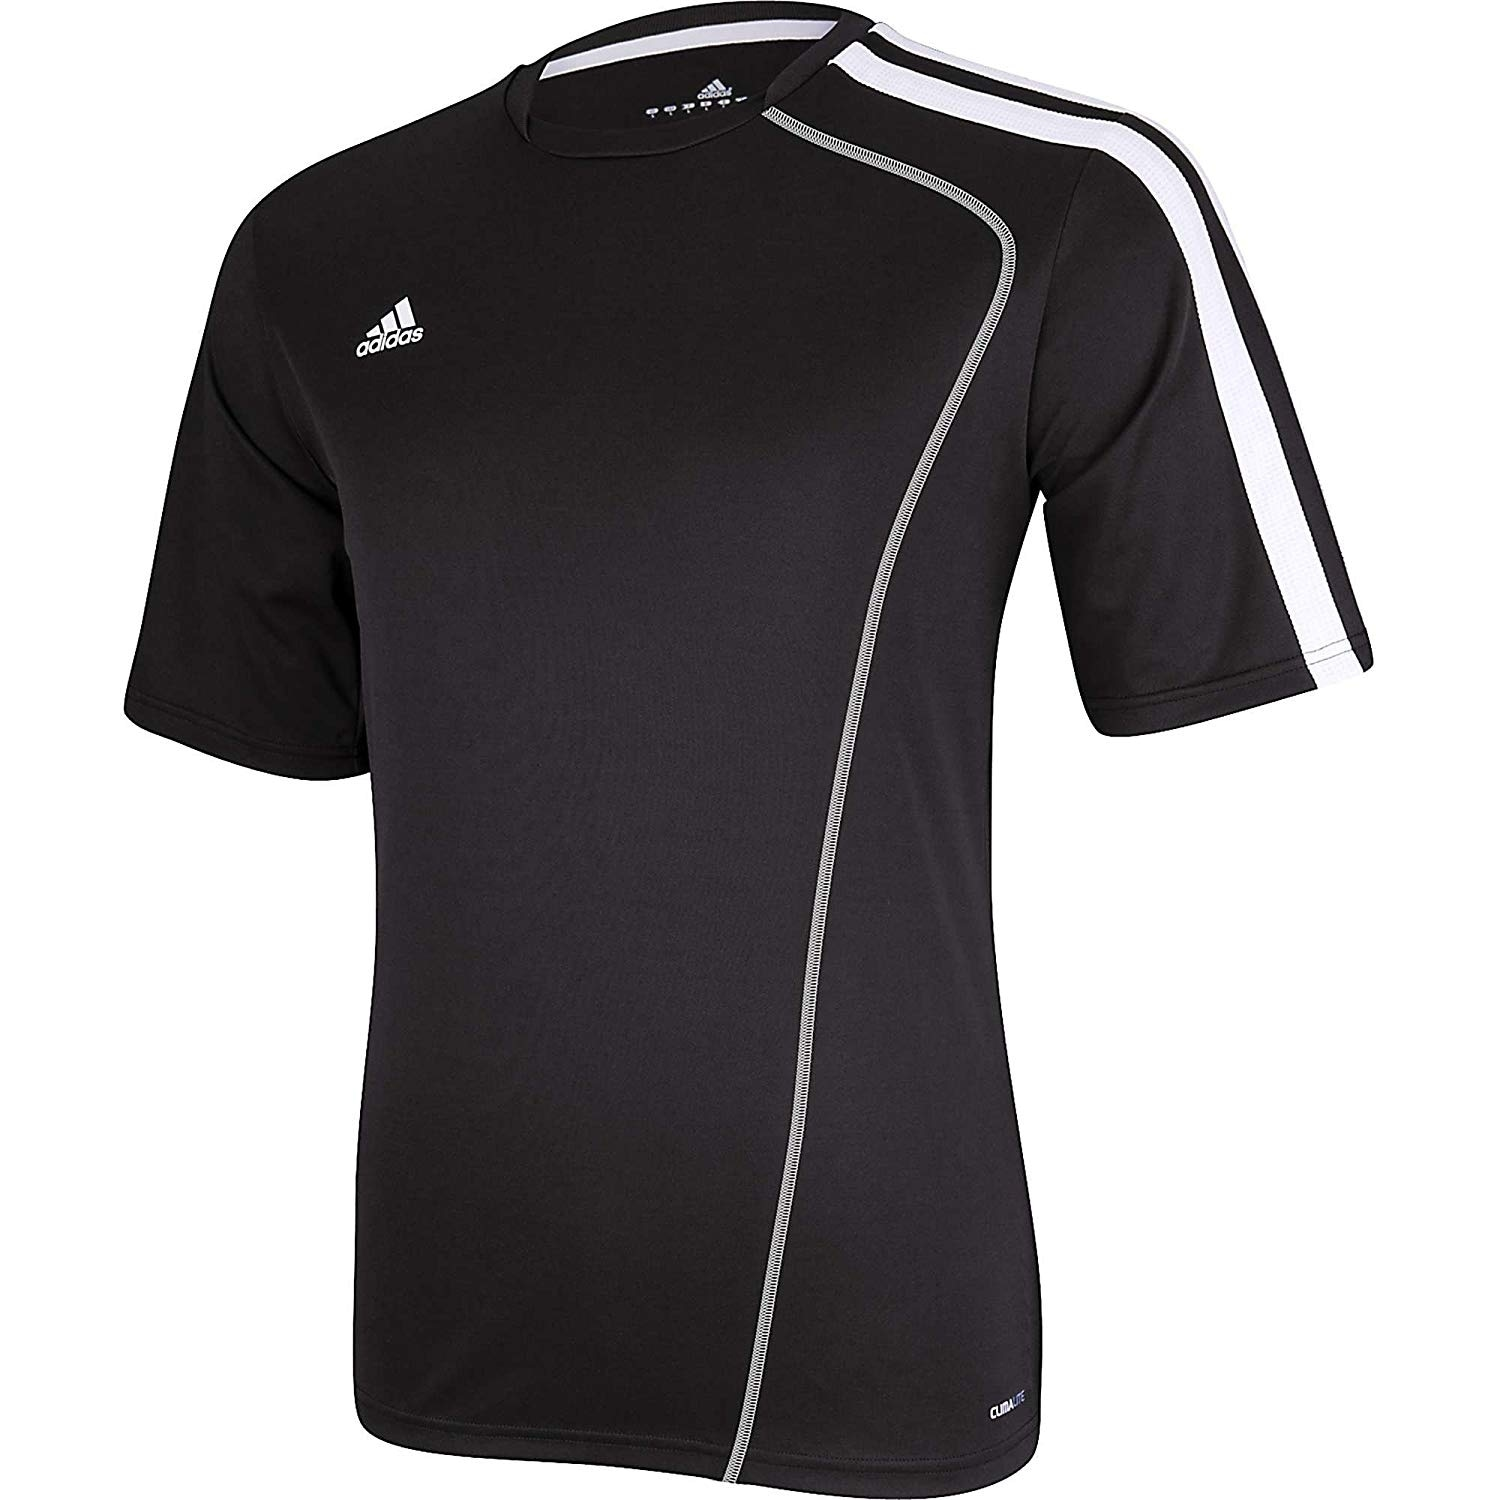 Adidas Boys Estro 12 Soccer Jersey T-Shirt Black//White Size Youth